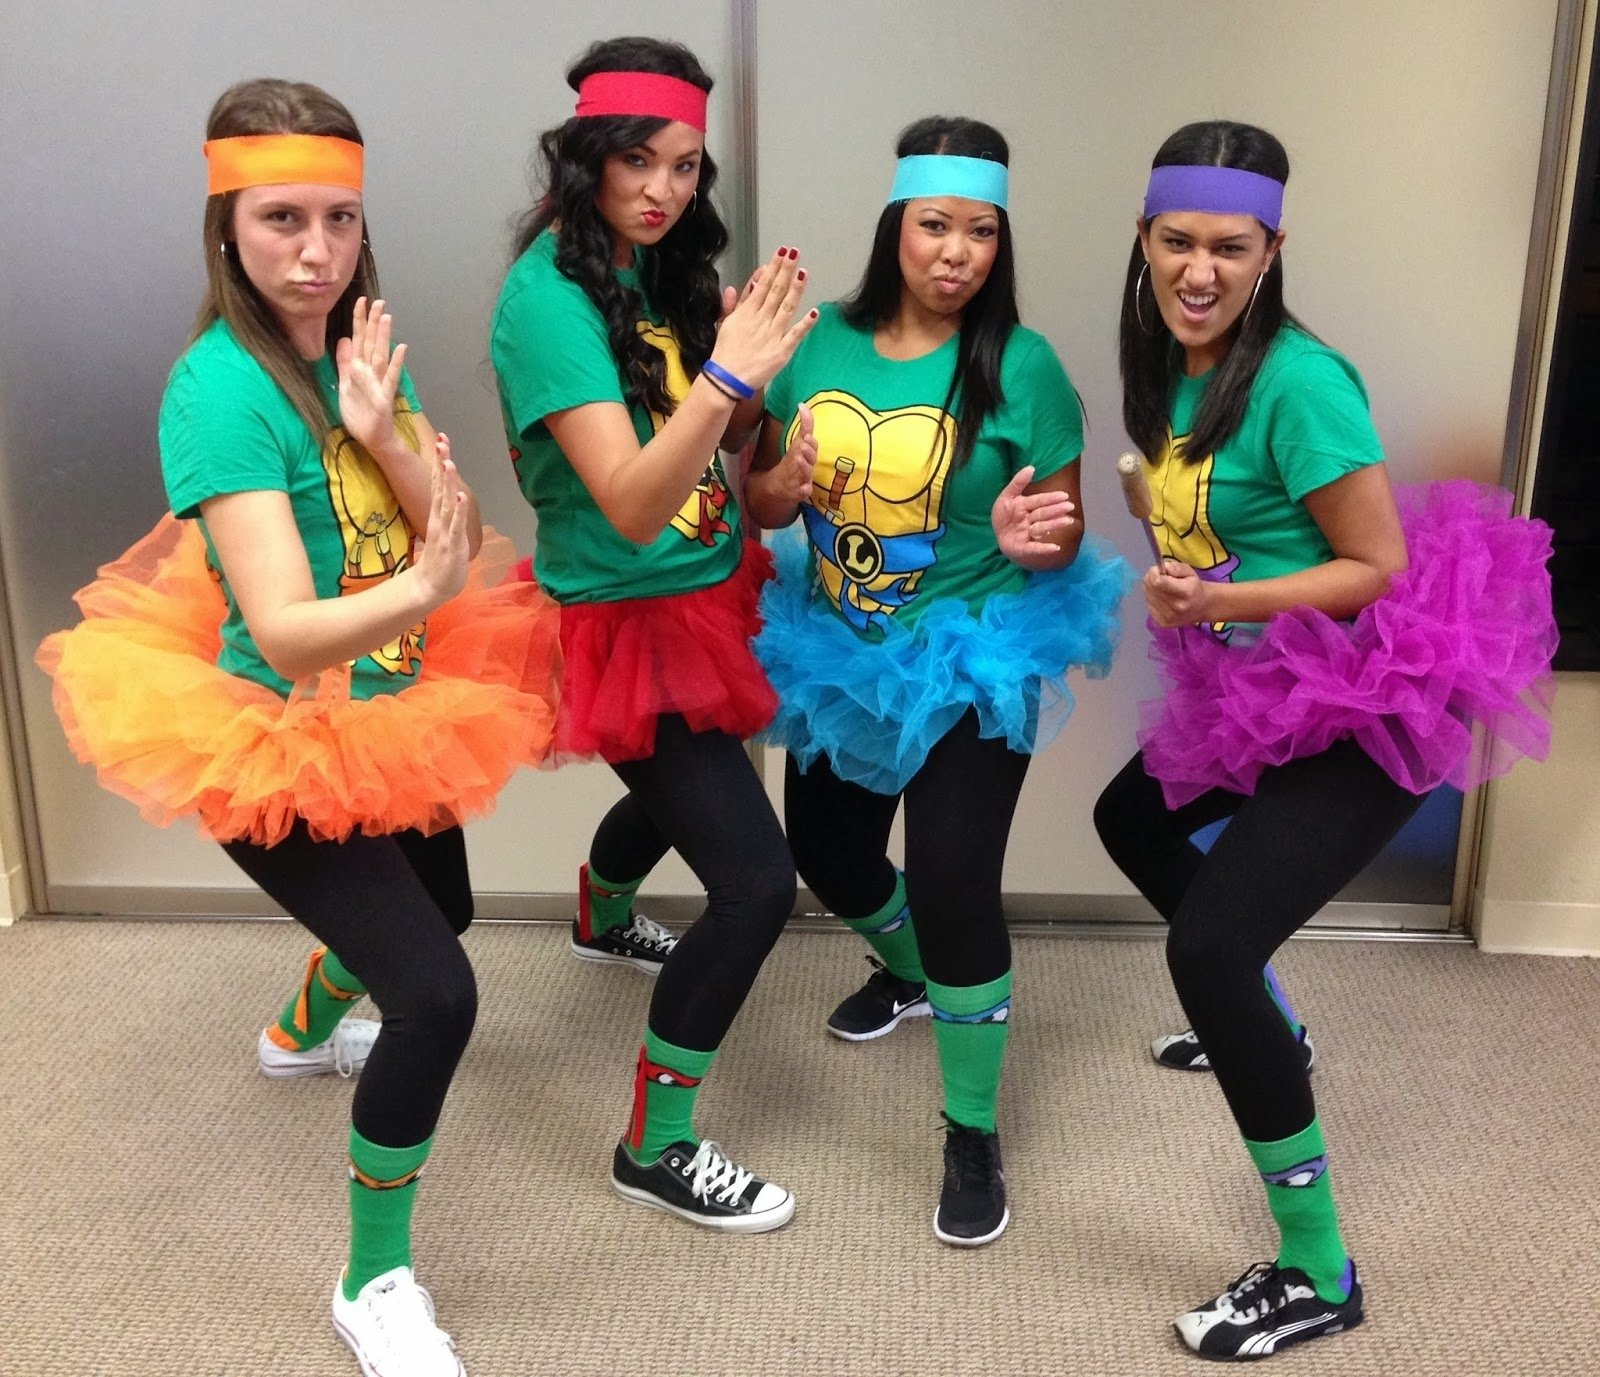 10 perfect good costume ideas for groups 26 90s group halloween costumes you and your squad